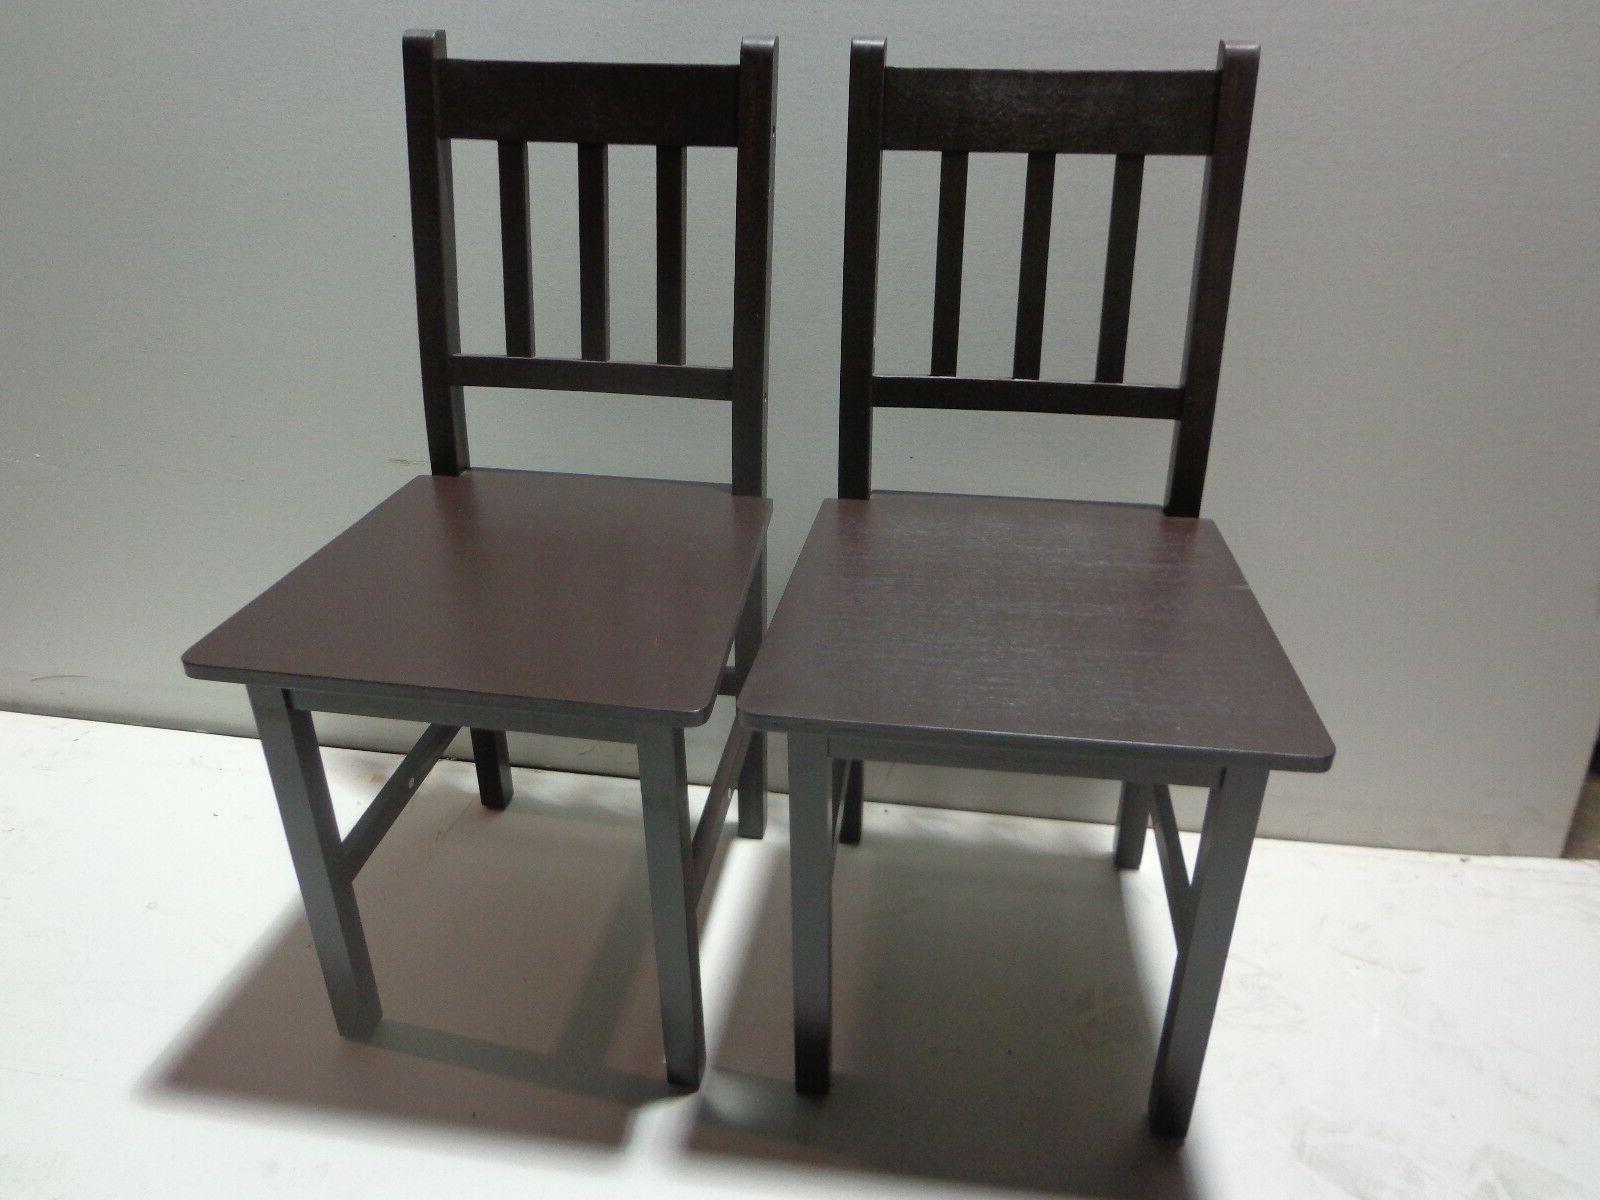 TMS 5 DINING TABLE 4 CHAIRS